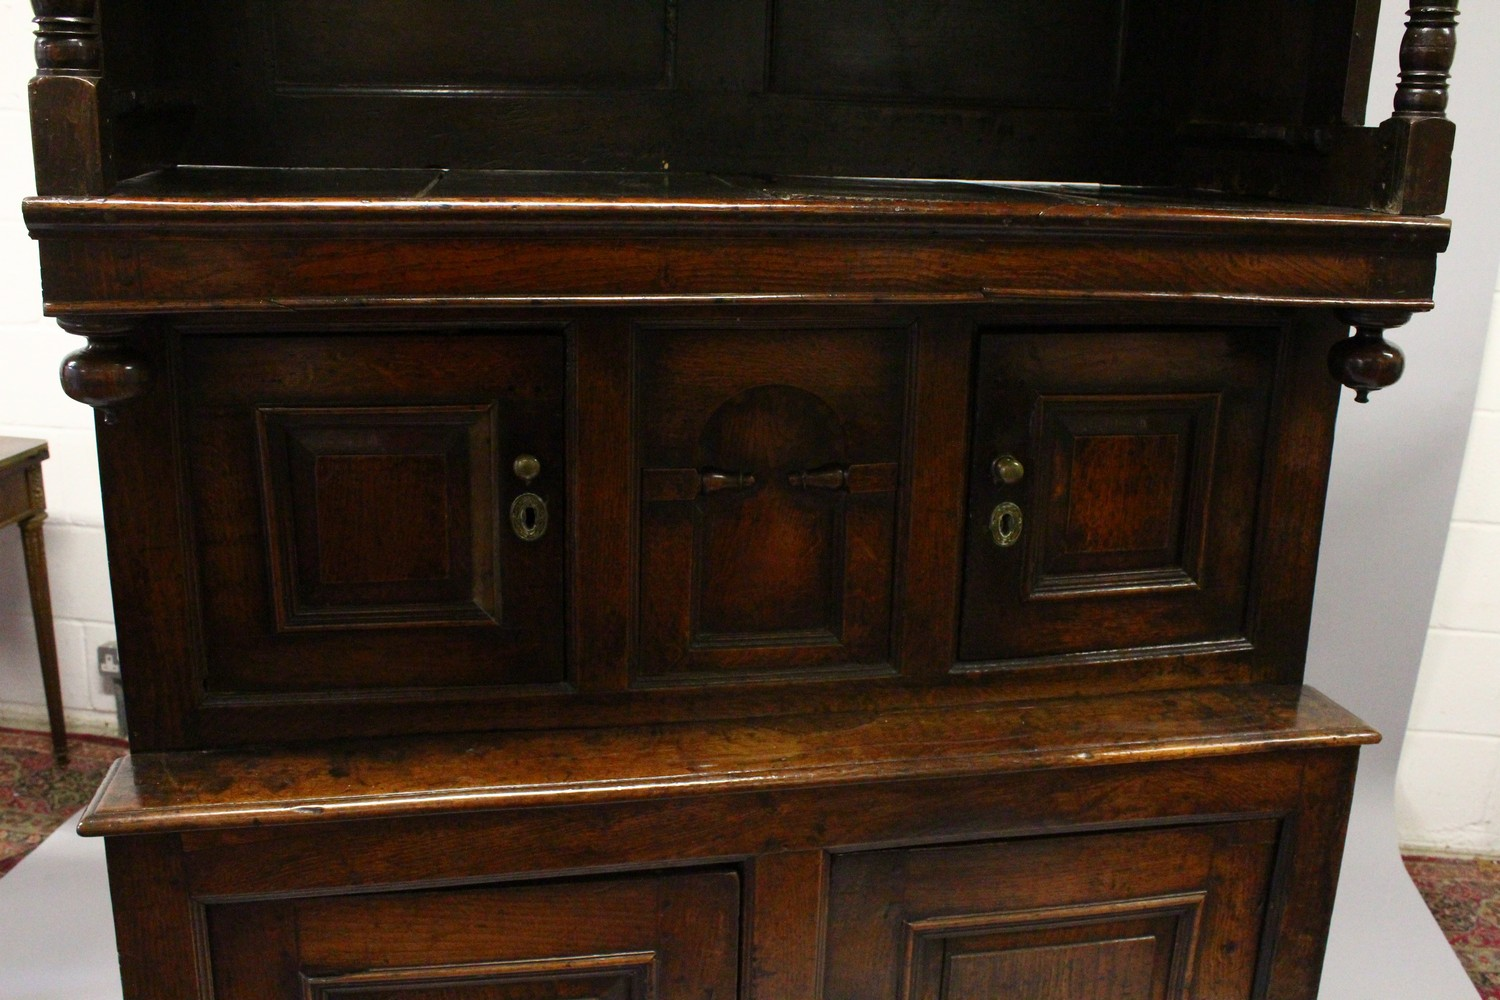 Lot 1010 - A GOOD 18TH CENTURY OAK TRIDARN, the upper section having a moulded cornice, panelled sides and